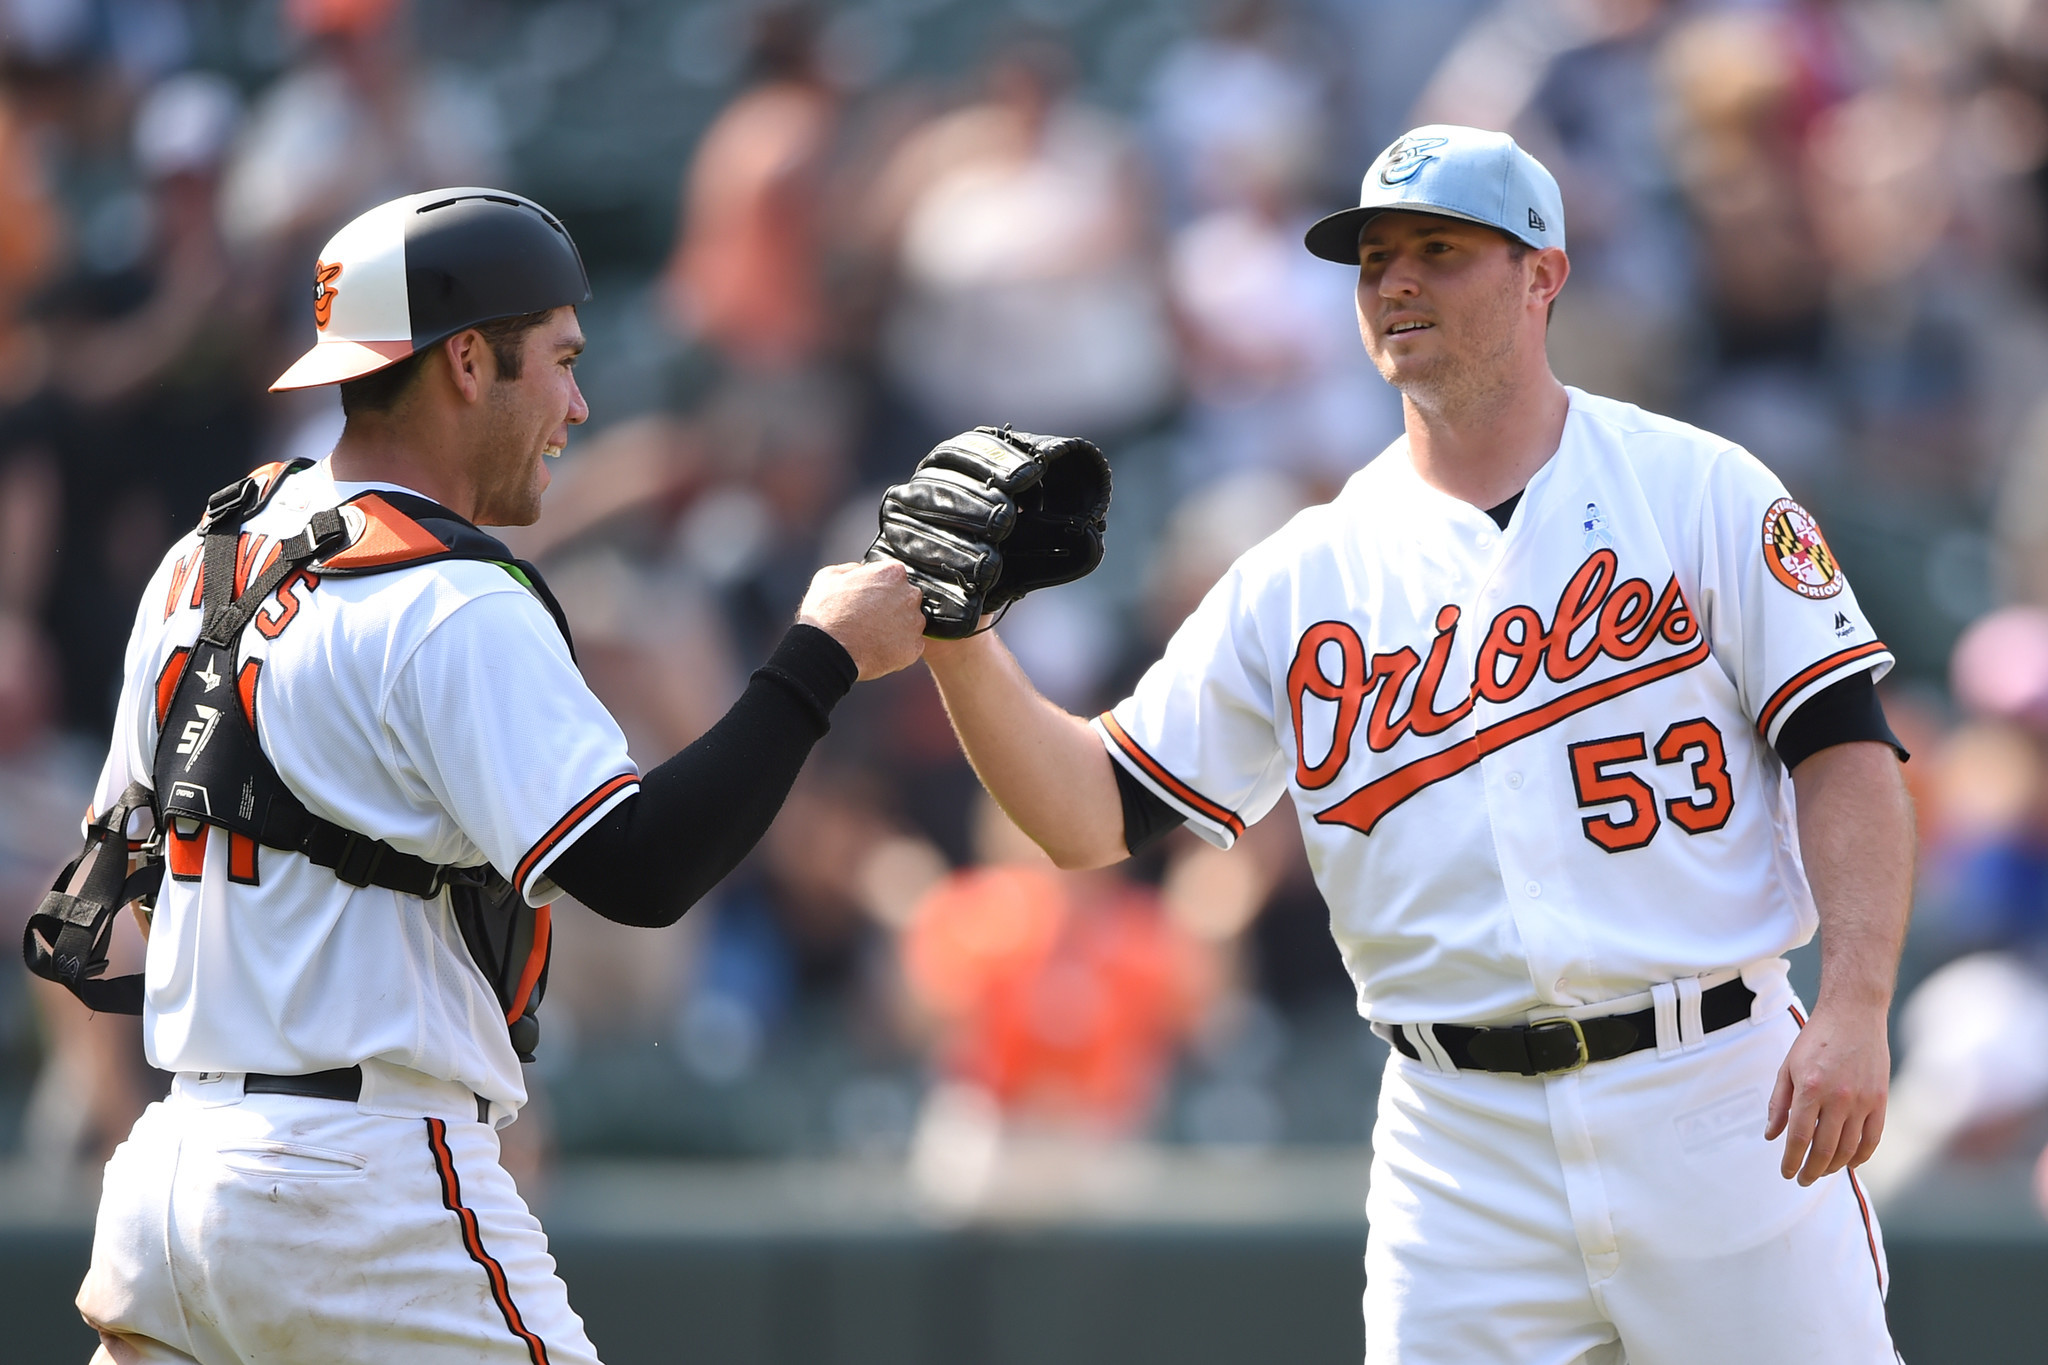 Bal-orioles-rewind-looking-back-at-sunday-s-10-4-win-over-the-marlins-20180617